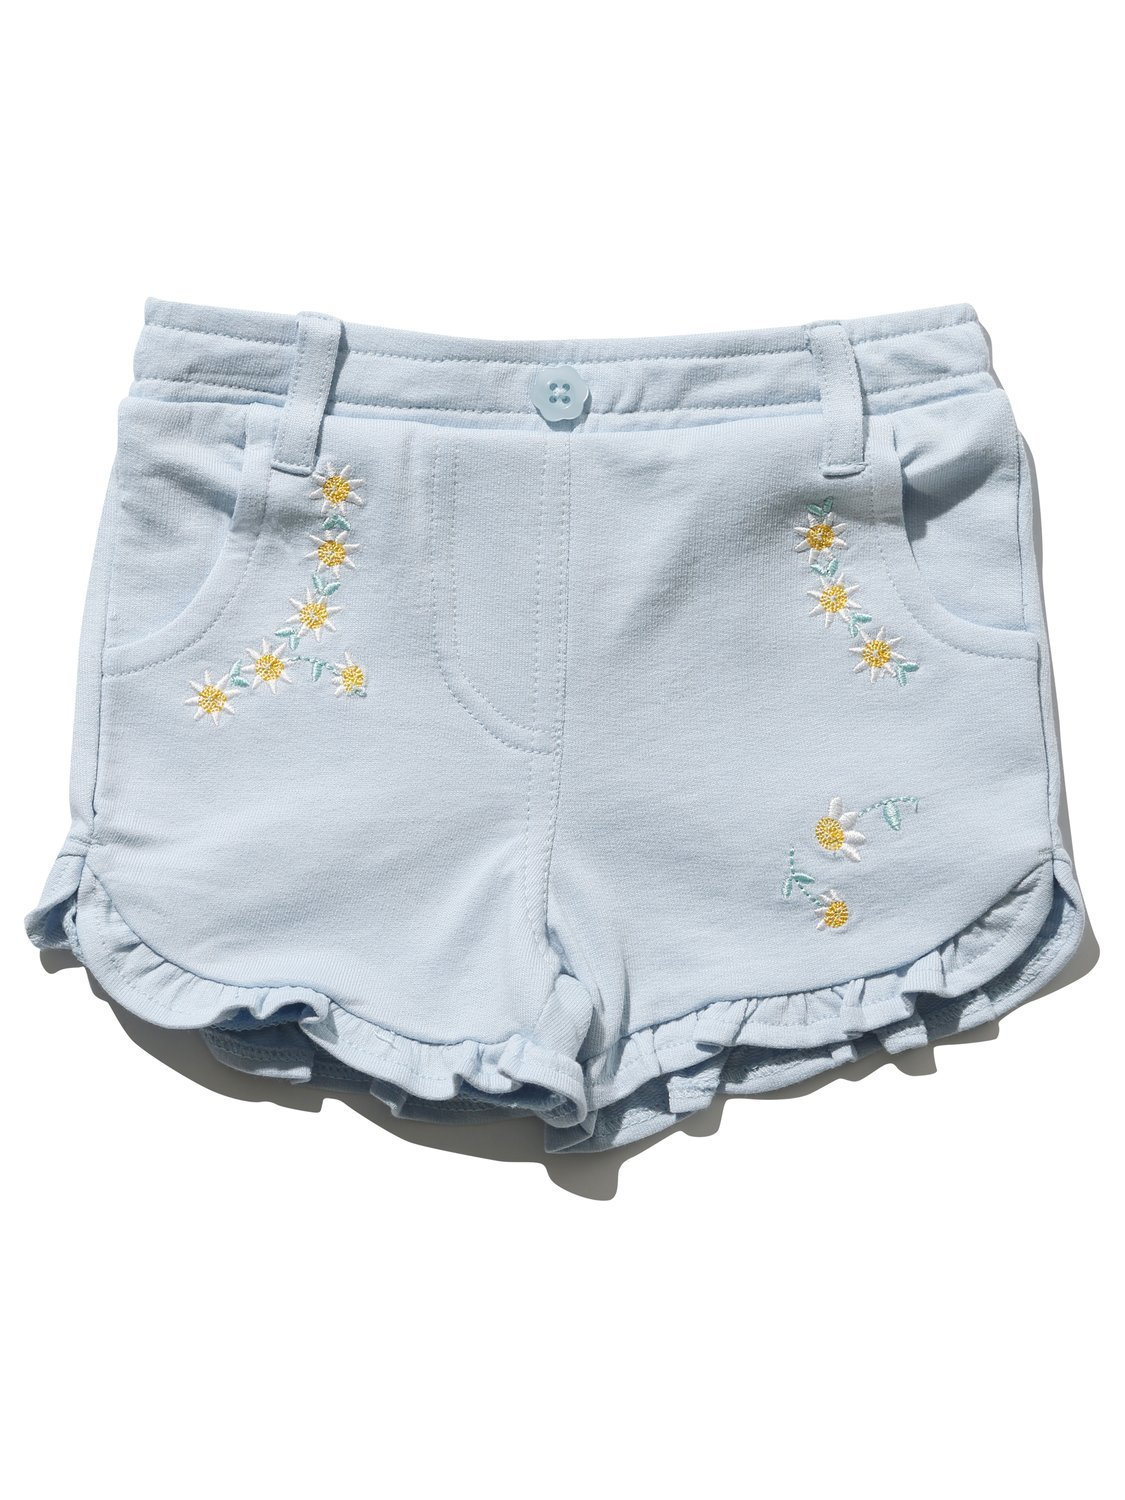 M& Co Baby Girl 100% Cotton Jersey Light Blue Pocket Detail Frill Hem Daisy Embroidered Shorts